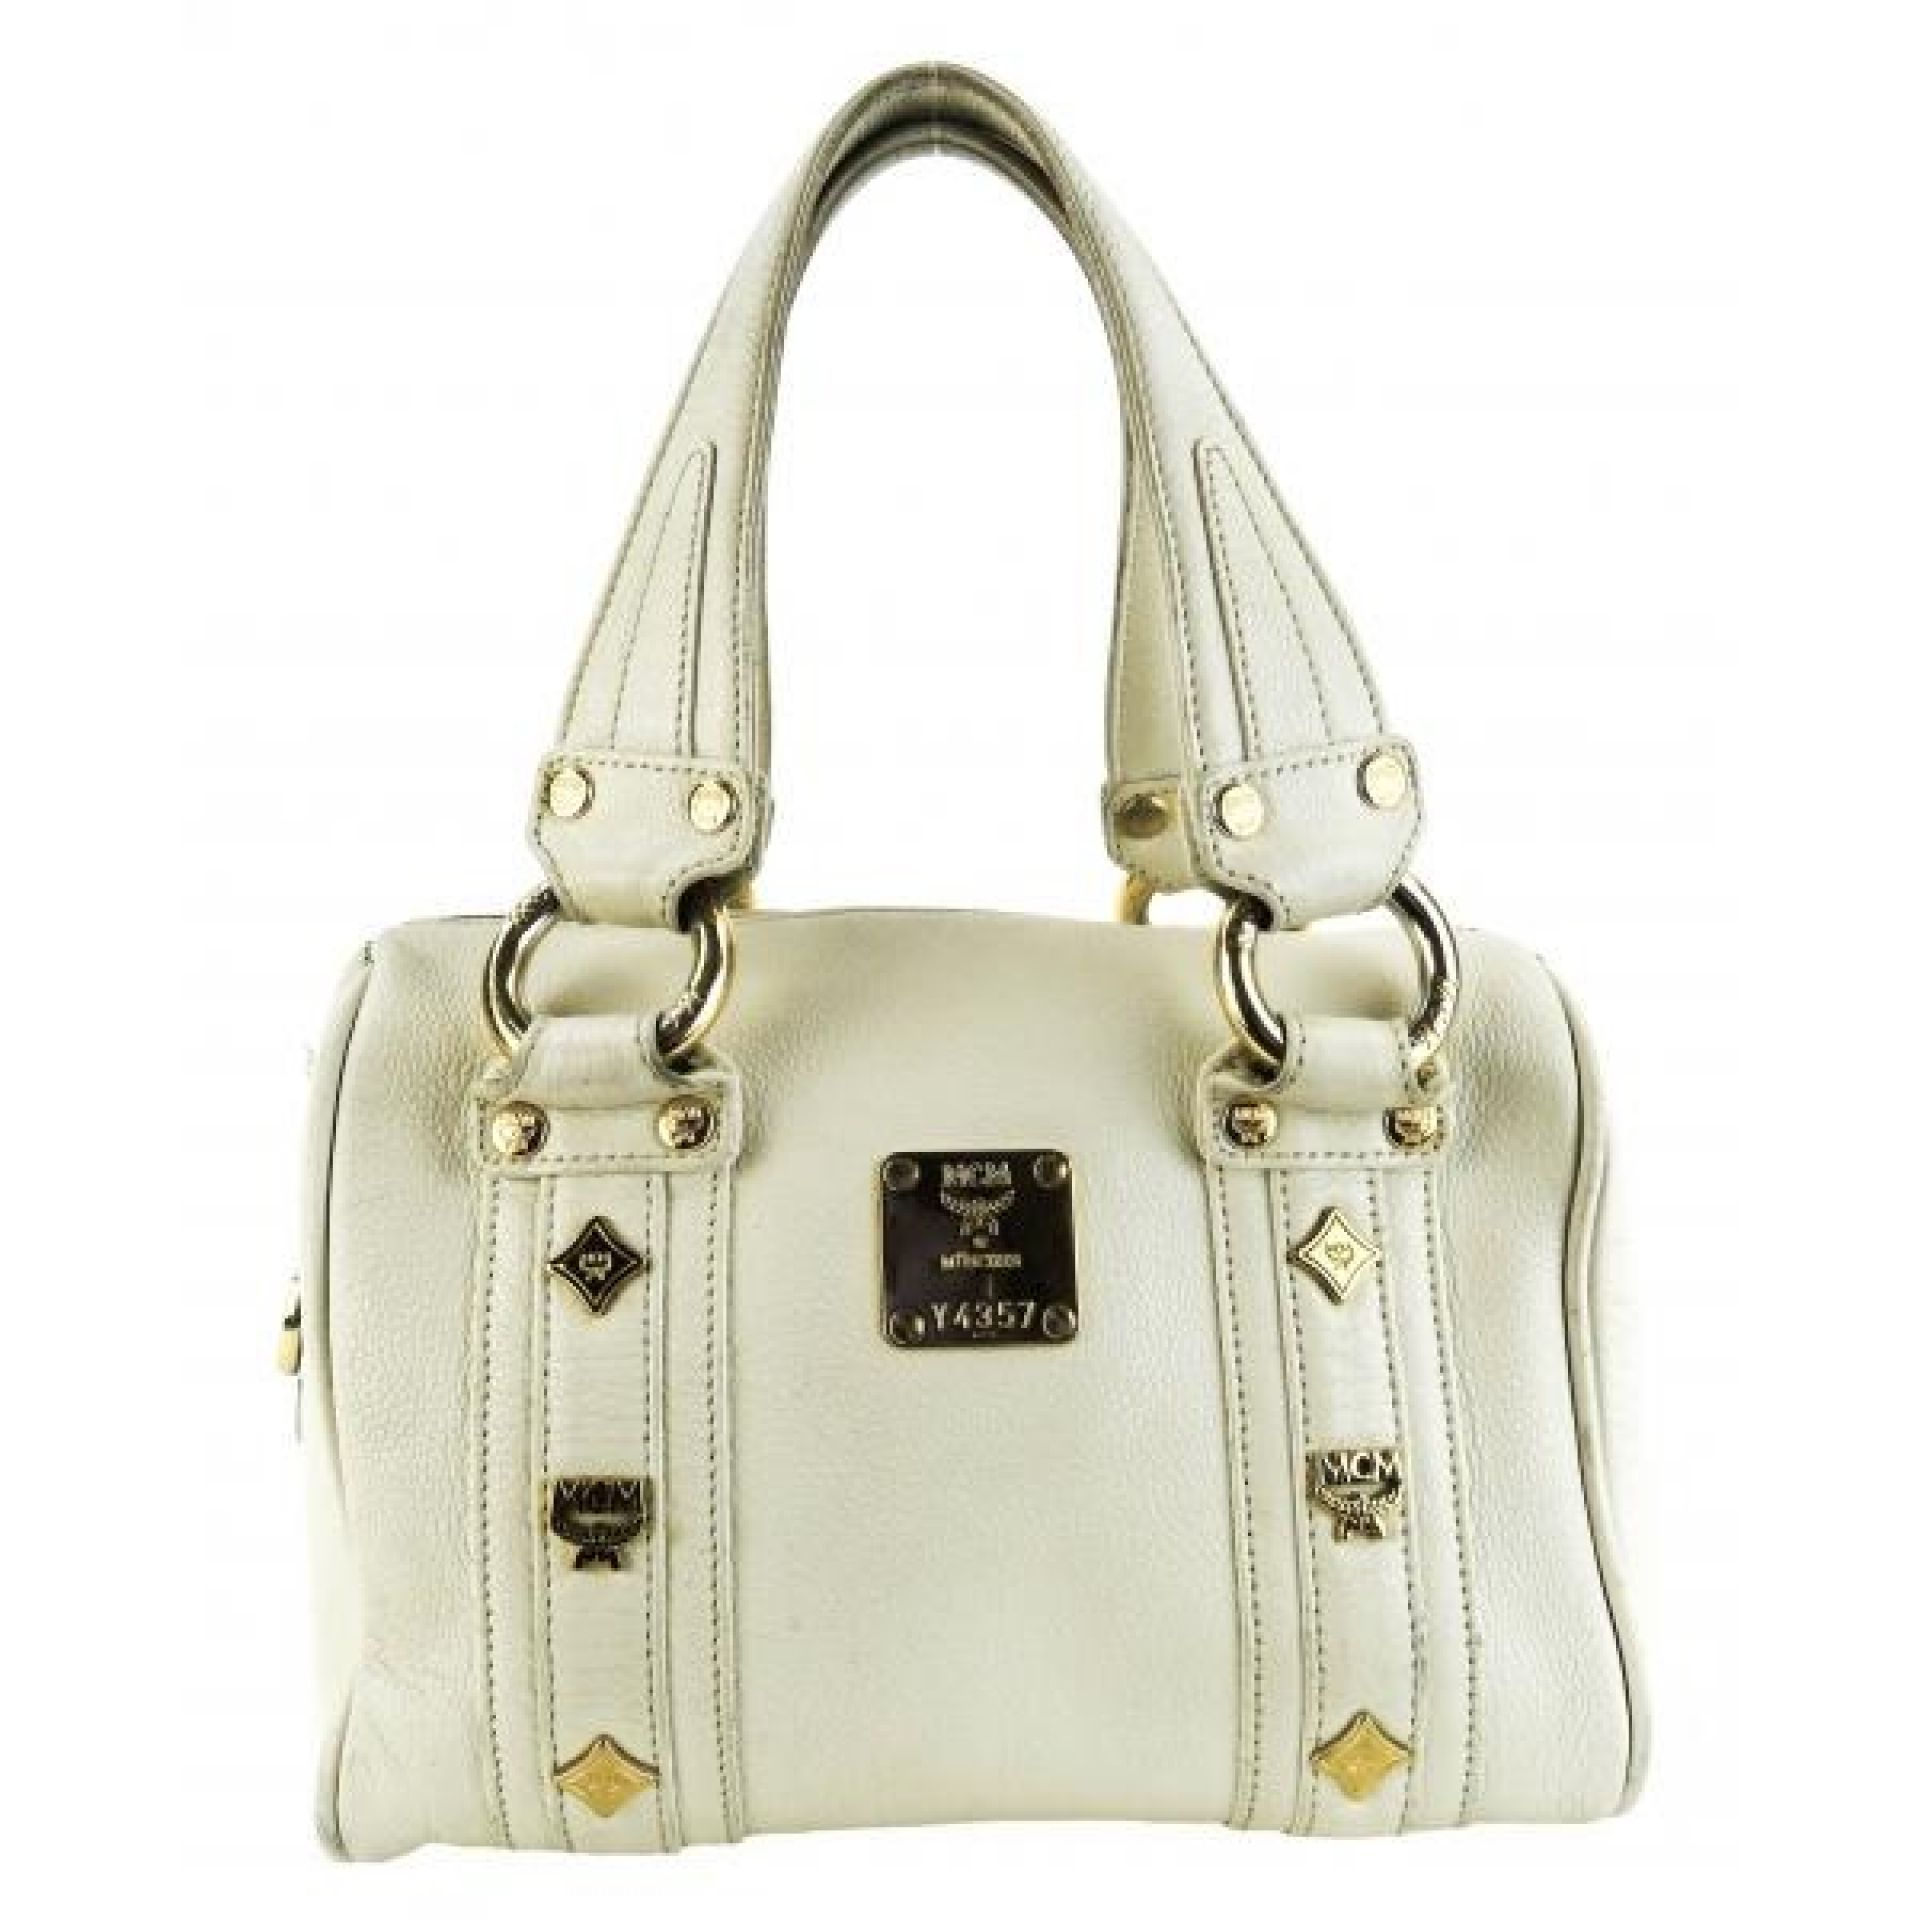 MCM Ivory Leather Small Femme Boston Satchel Bag